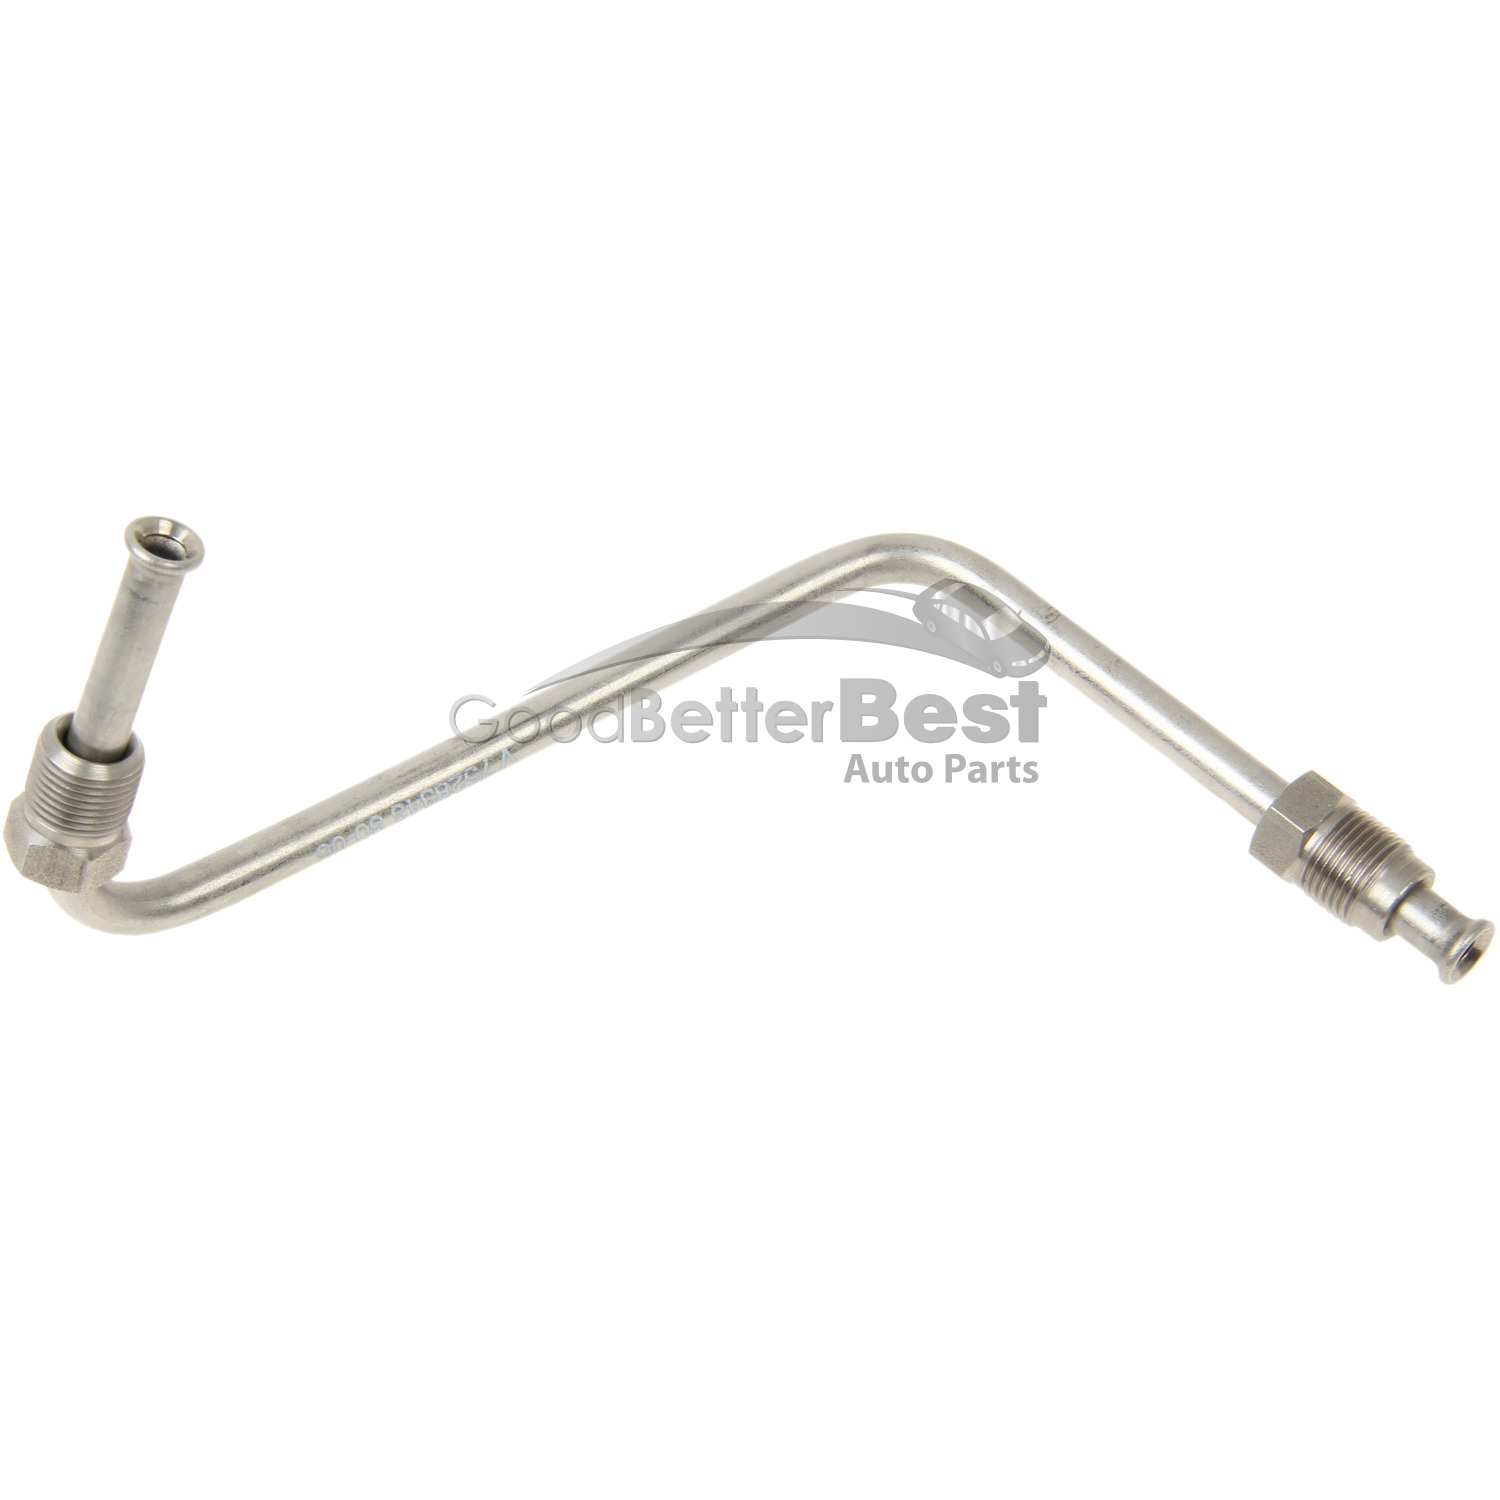 New Genuine Fuel Injection Fuel Feed Pipe For